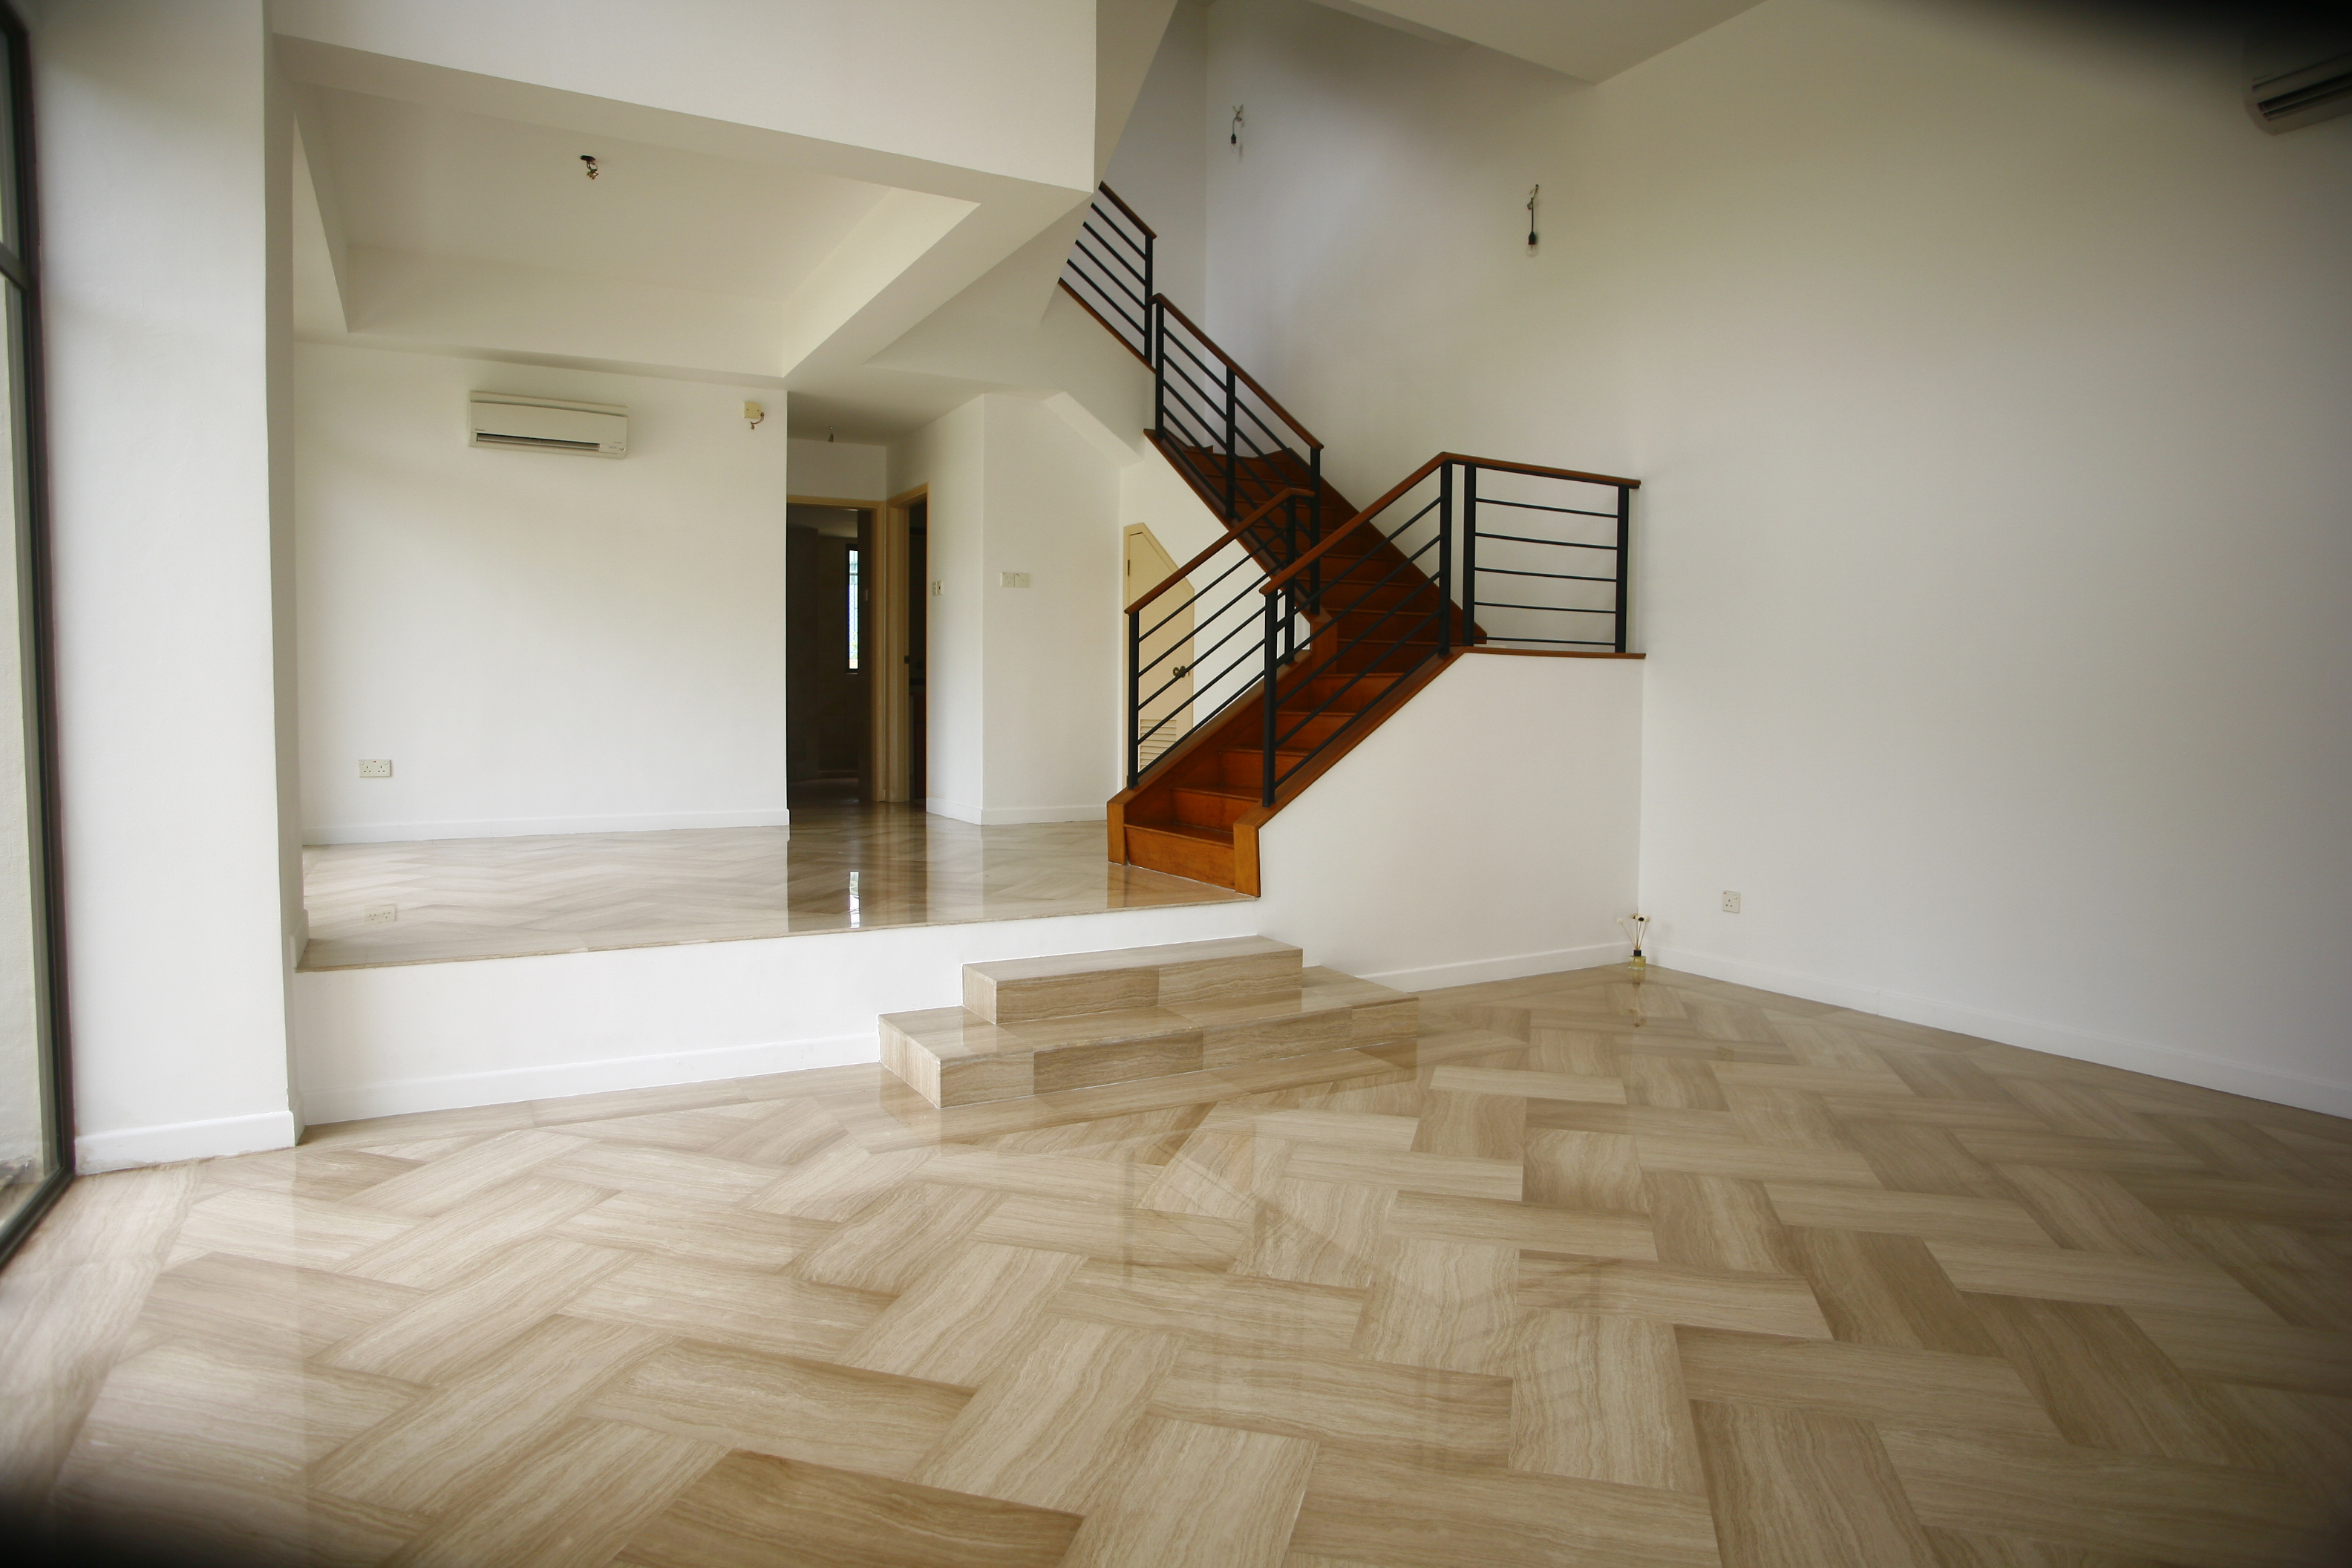 Chuan villas terrace house singapore landed property for Terrace house singapore